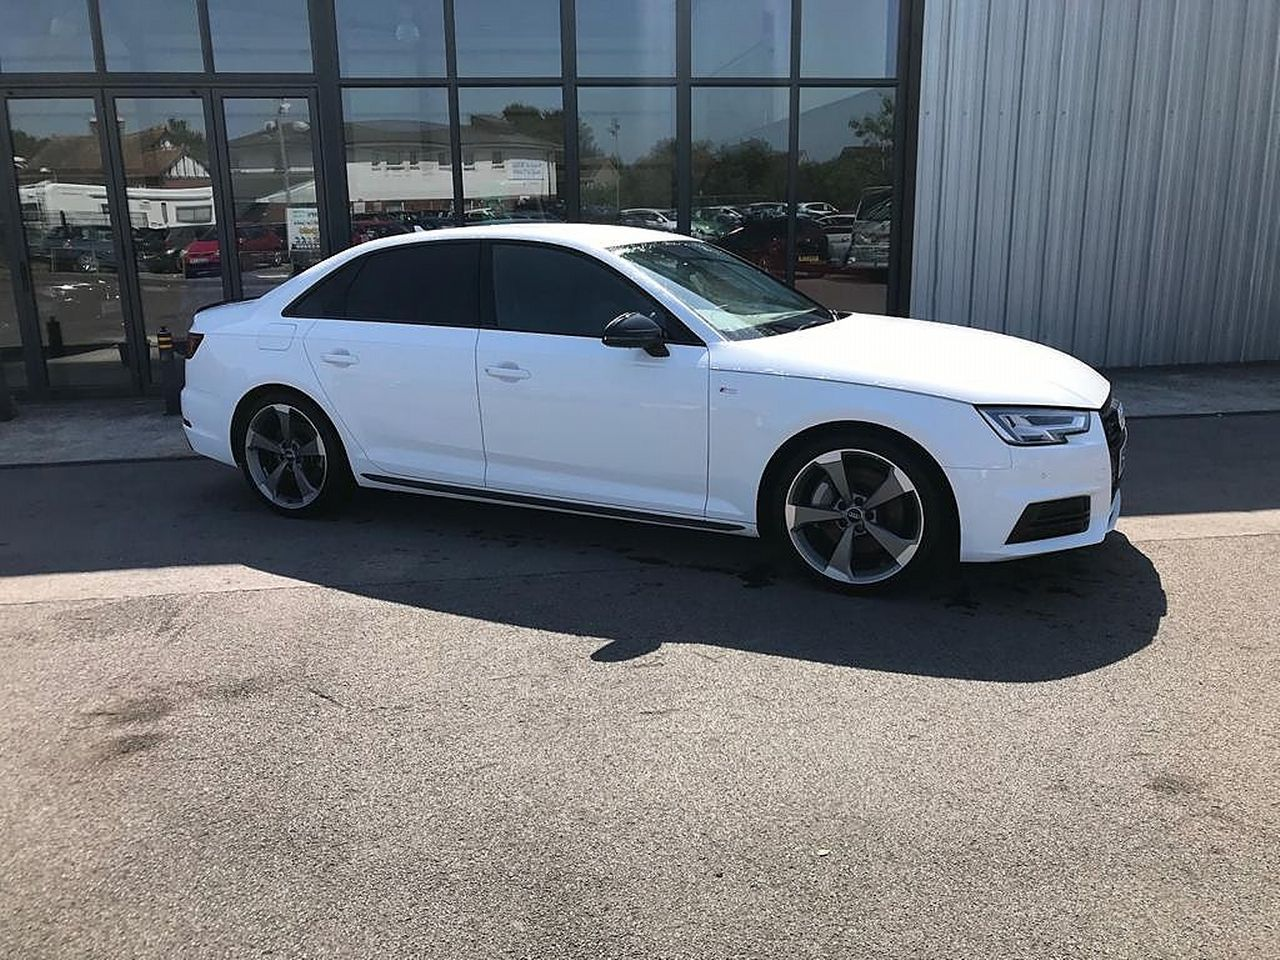 2017 AUDI A4 Black Ed 2.0 TFSI 252PS quattro S tronic - Picture 1 of 17